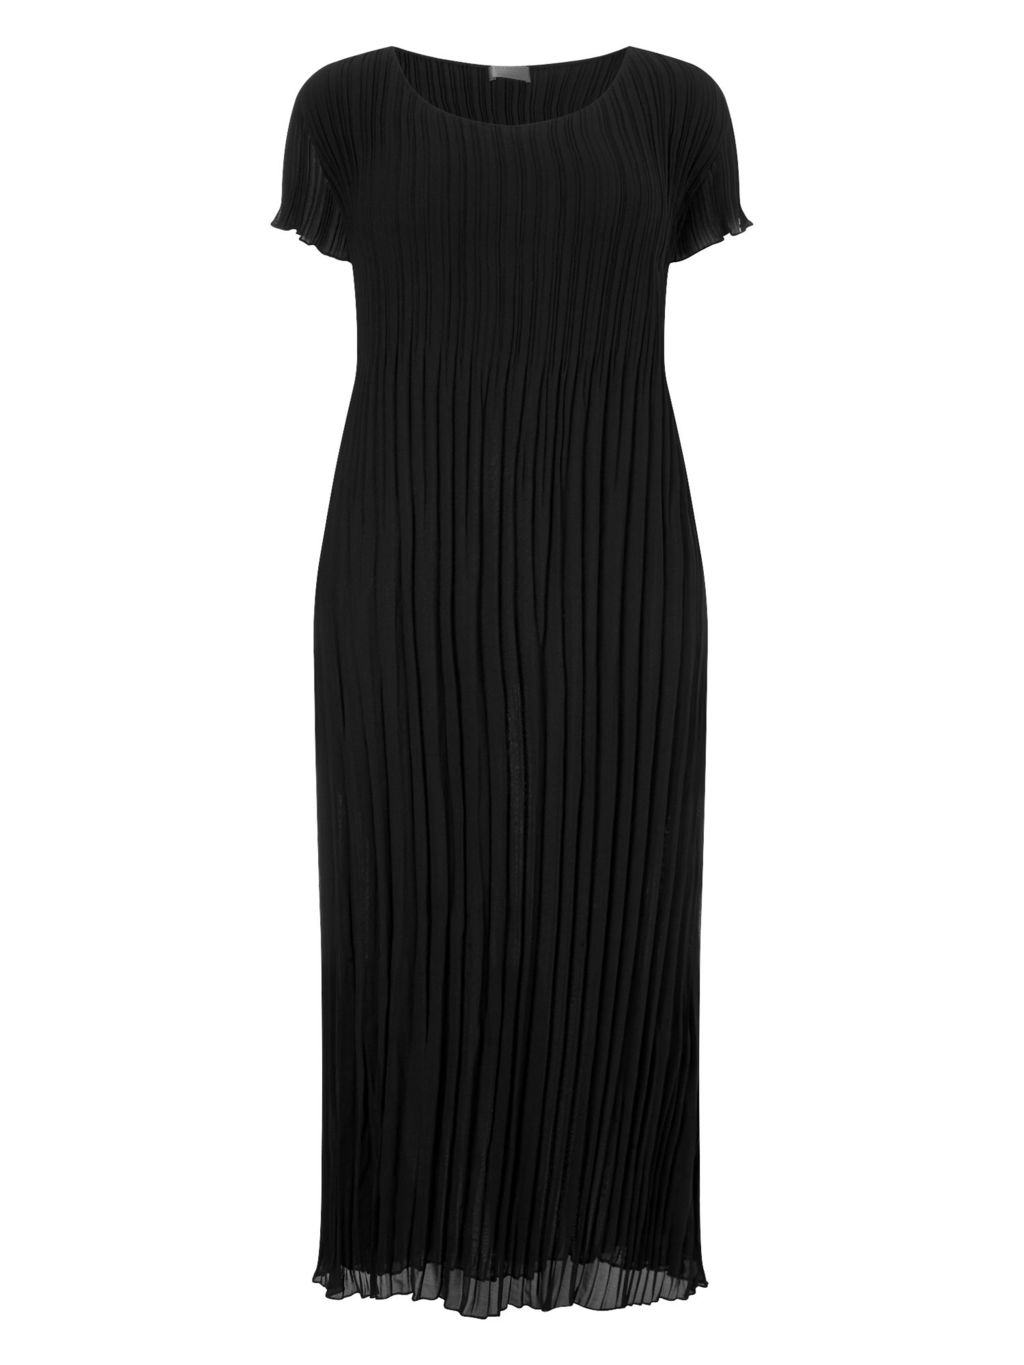 Black Crinkle Dress - style: shift; length: below the knee; neckline: round neck; pattern: plain; predominant colour: black; fit: body skimming; fibres: polyester/polyamide - 100%; occasions: occasion; sleeve length: short sleeve; sleeve style: standard; pattern type: fabric; texture group: other - light to midweight; season: s/s 2016